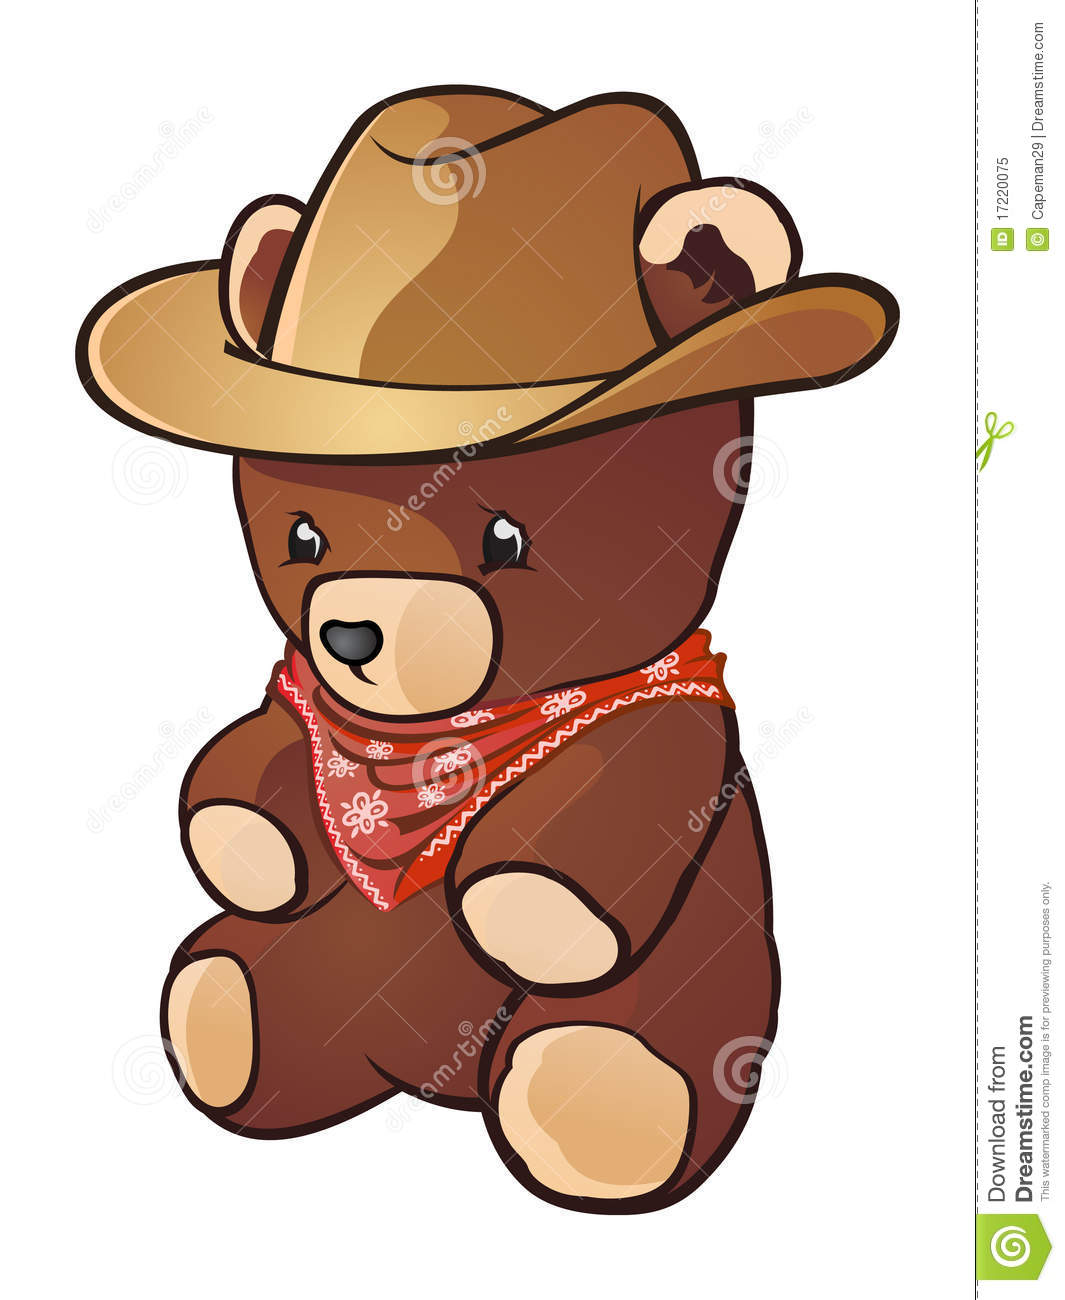 Cowboy Teddy Bear stock vector. Image of charro, american ...